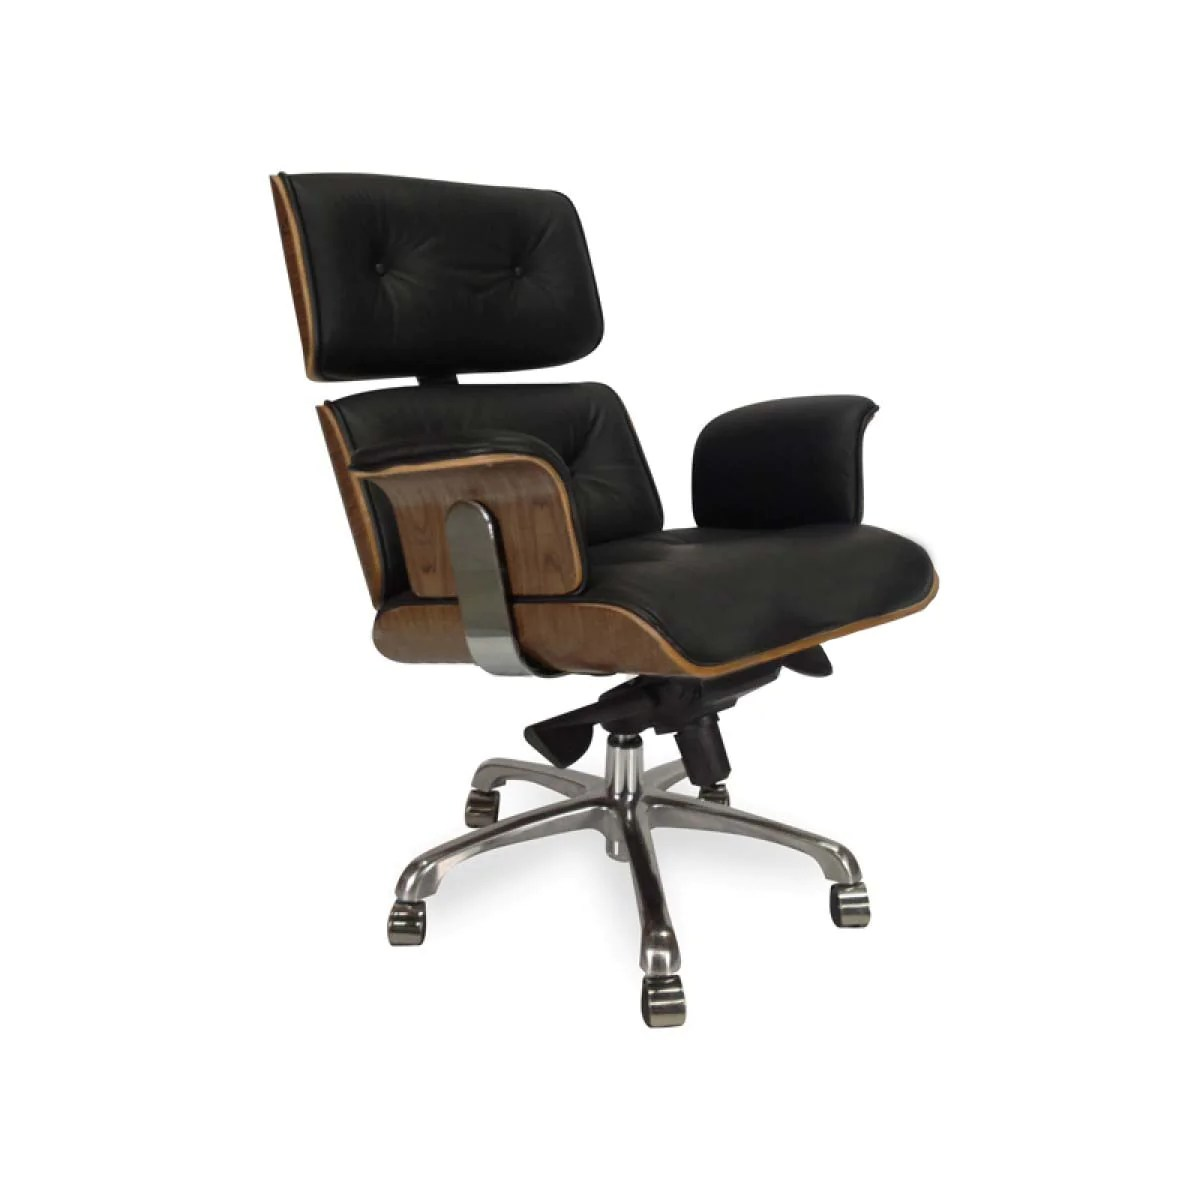 Home Office Desk Chairs Calibre Executive Office Home Office Desk Chair With High Back Armrest In Soft Black Italian Leather With Walnut Veneer Free Delivery Aust Wide